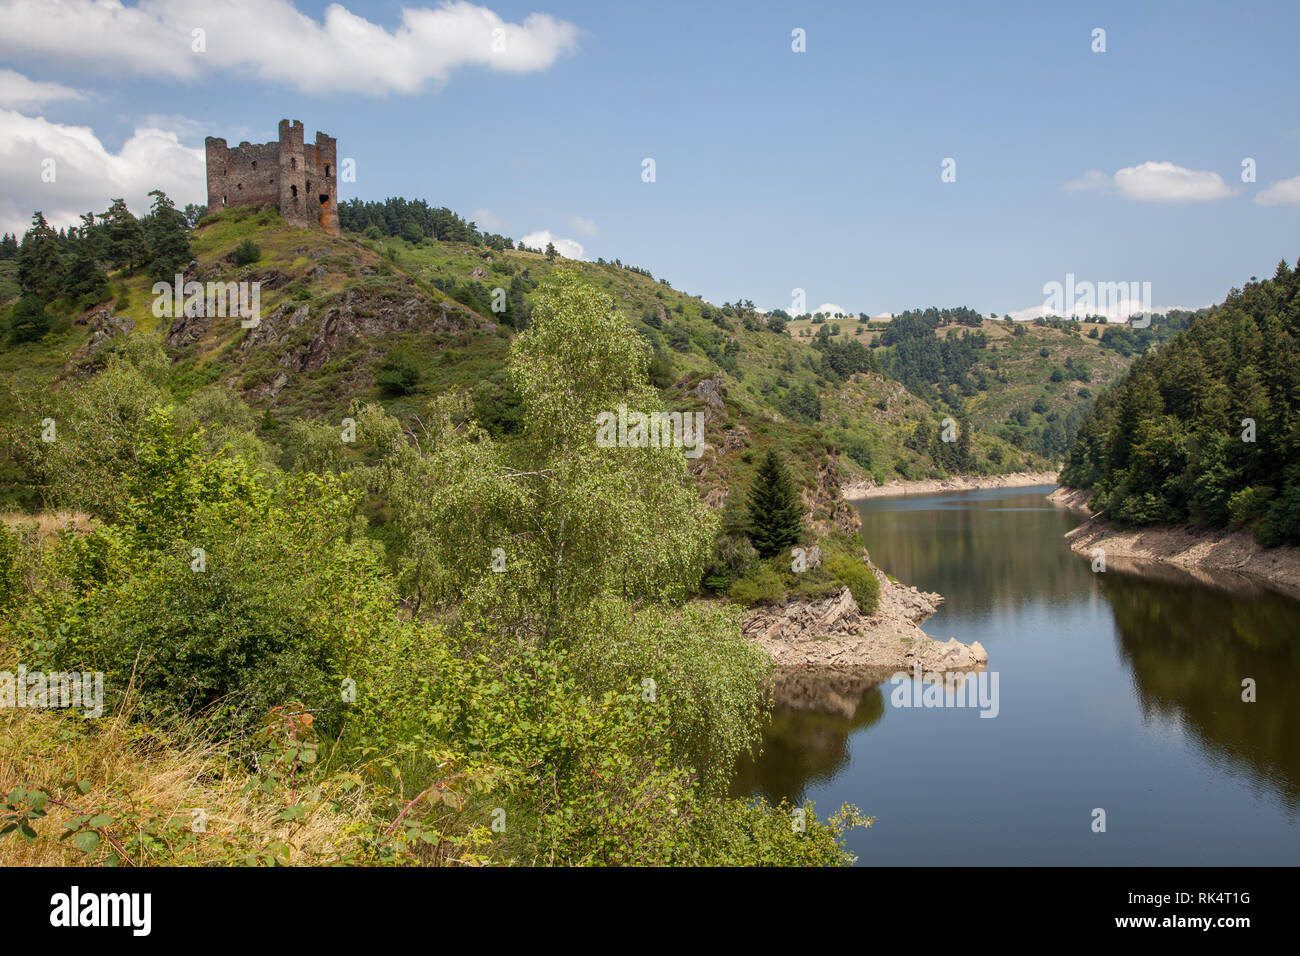 astle on the top of a hill in southe of France - Stock Image